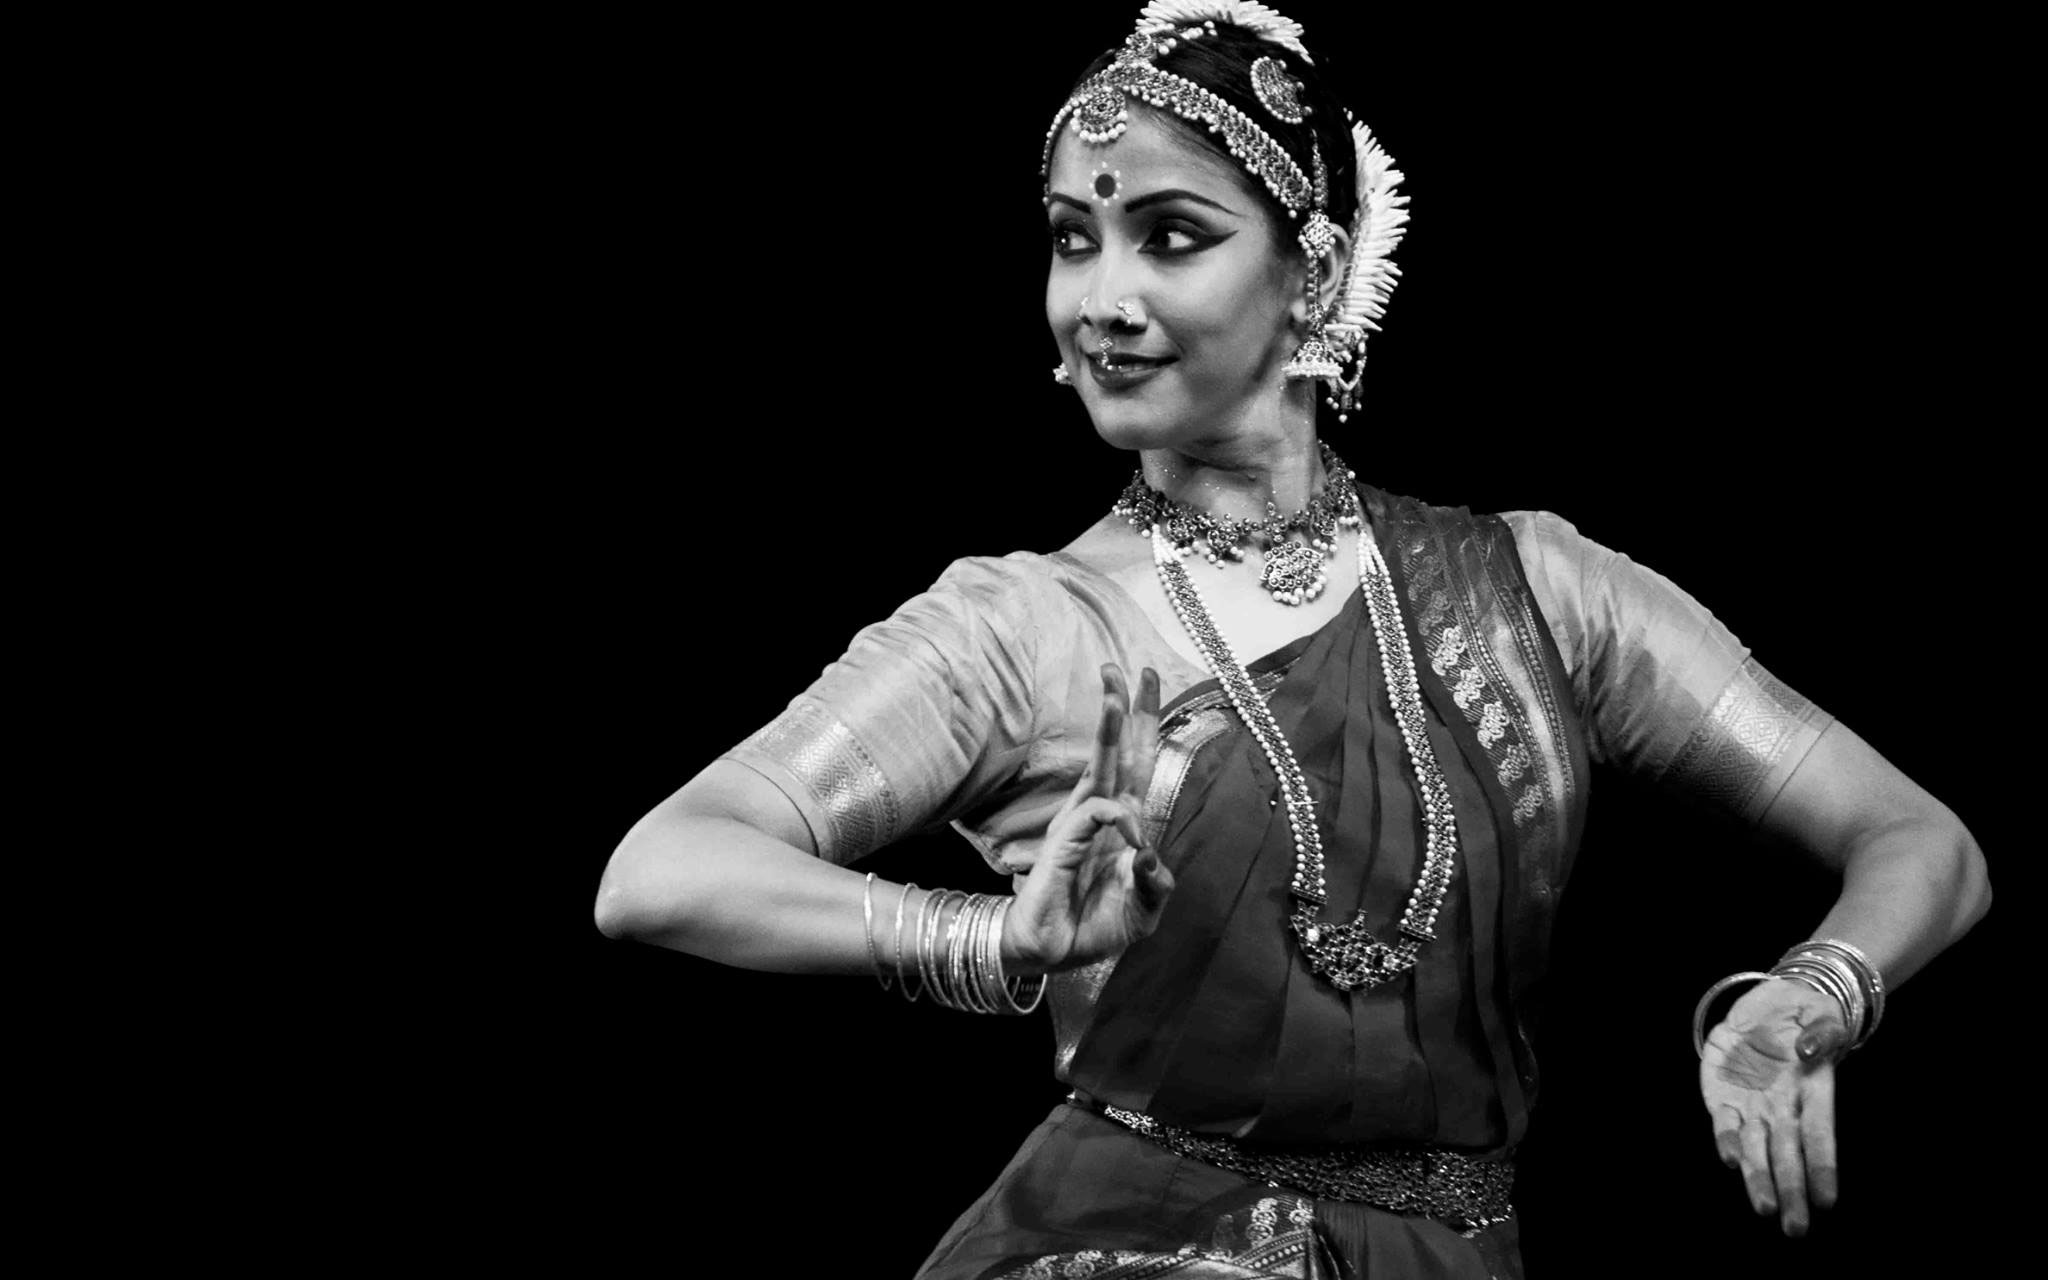 Her traditional yet inventive approach revitalises the physicality, musicality and expressive theatricality of the dance to create an exceptional style that is distinct and meaningful to audiences across the world.